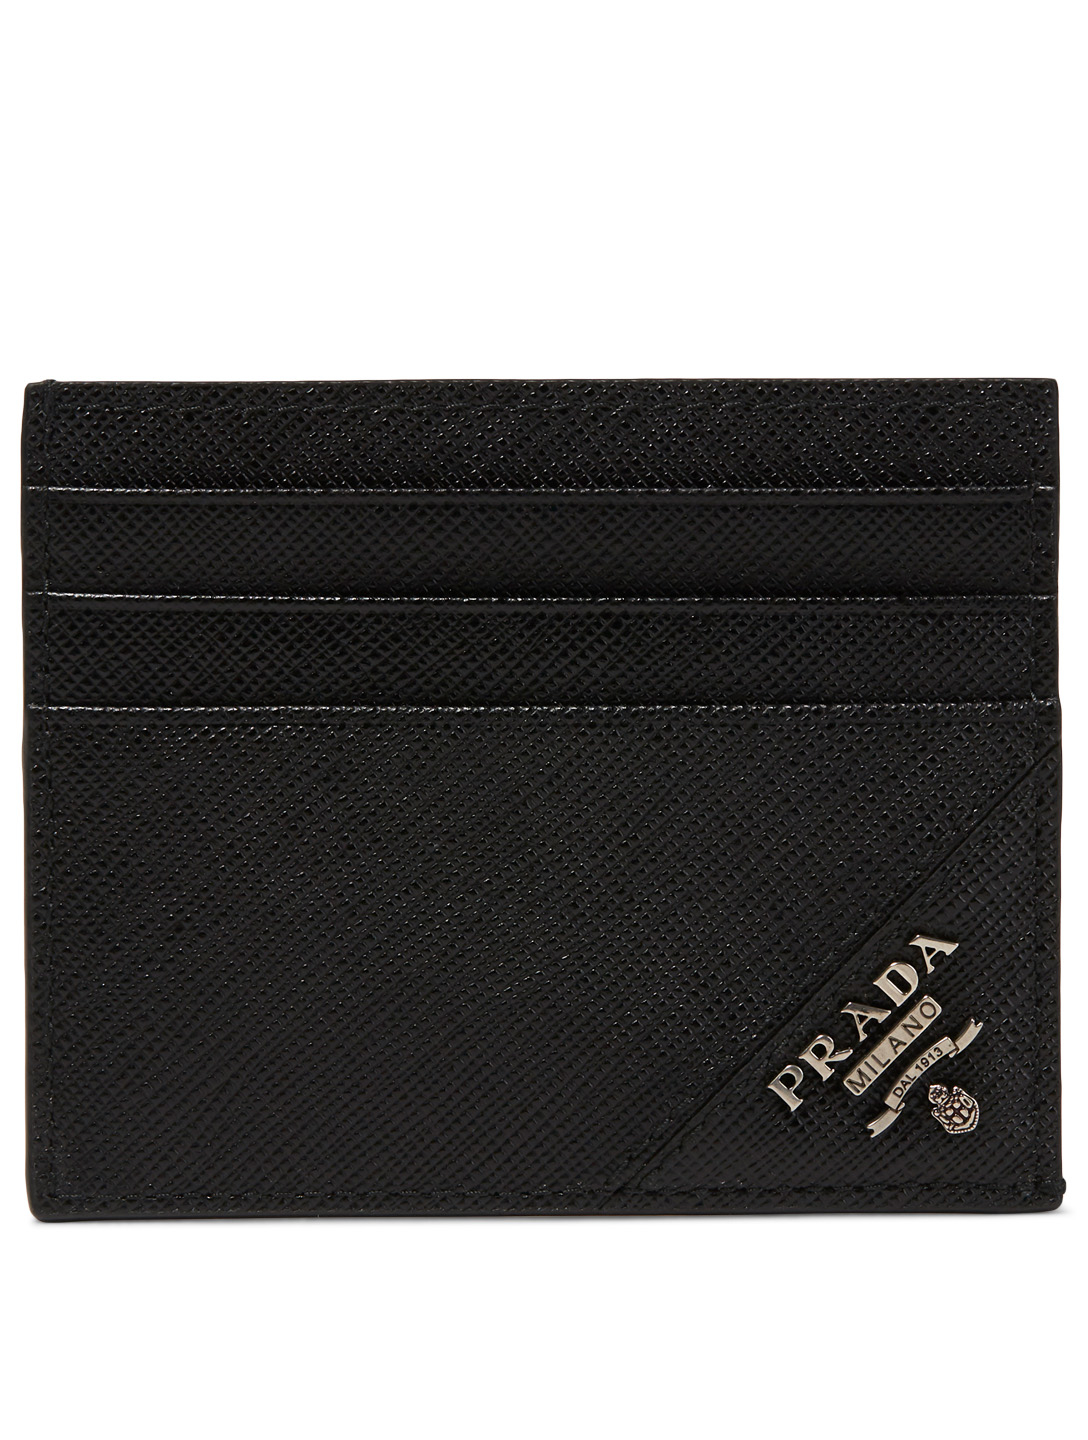 81d75bec2394 PRADA Saffiano Leather Logo Card Holder Men's Black ...